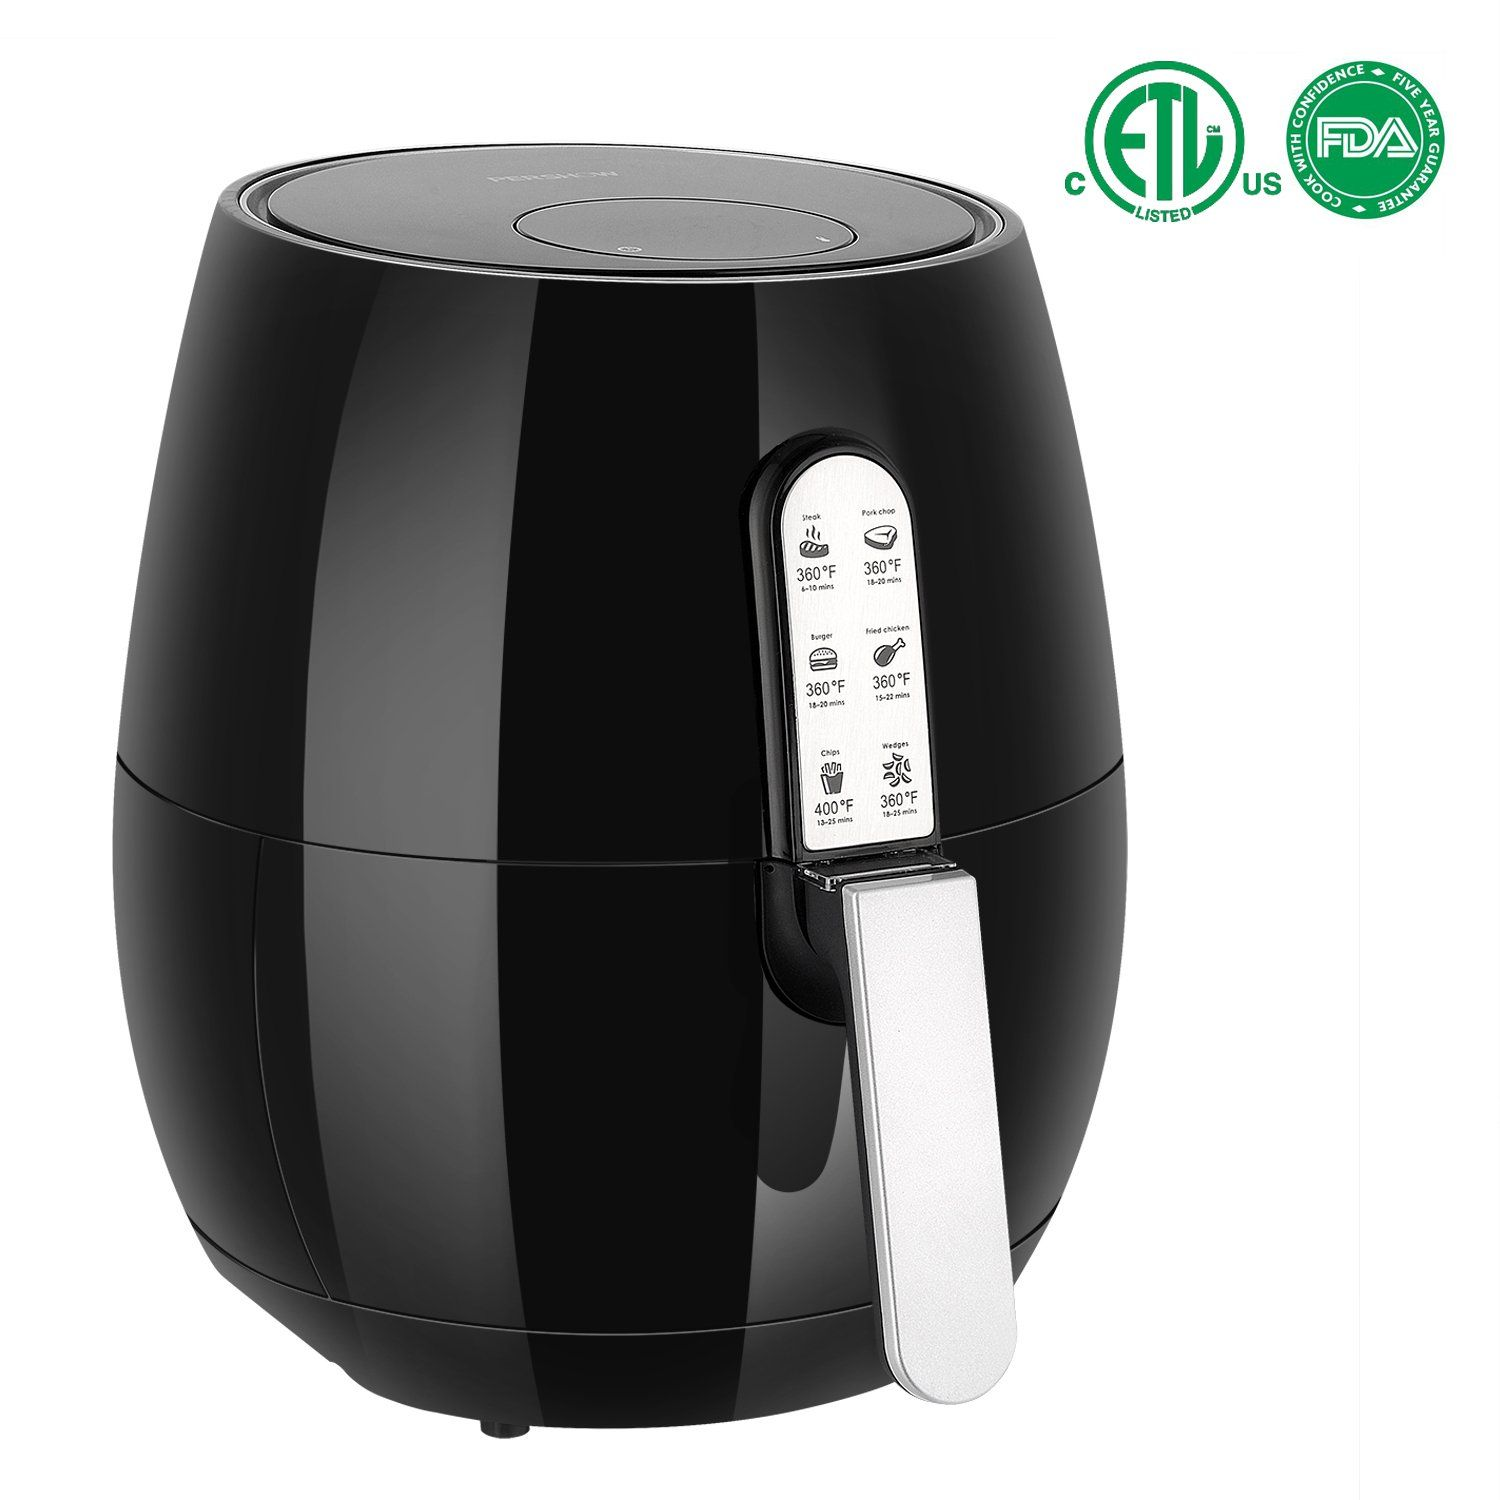 60 off 3.7Quart, Air Fryer, Touch Screen Time and